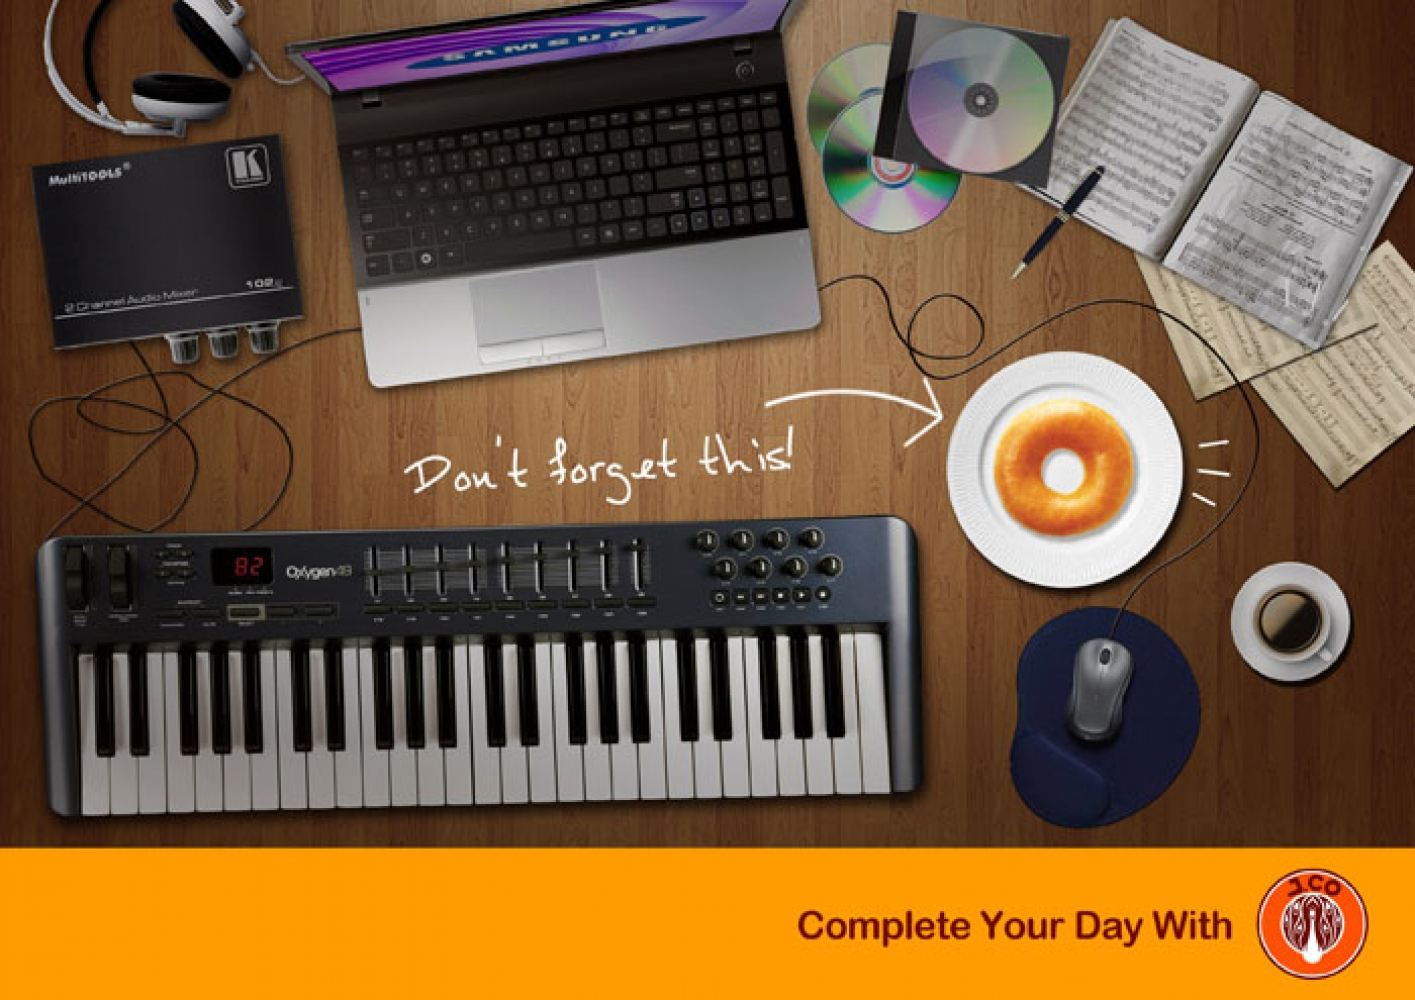 Complete Your Day With... by AYA DiandaraSalvator (AYAdndr),periklanan,desain grafis